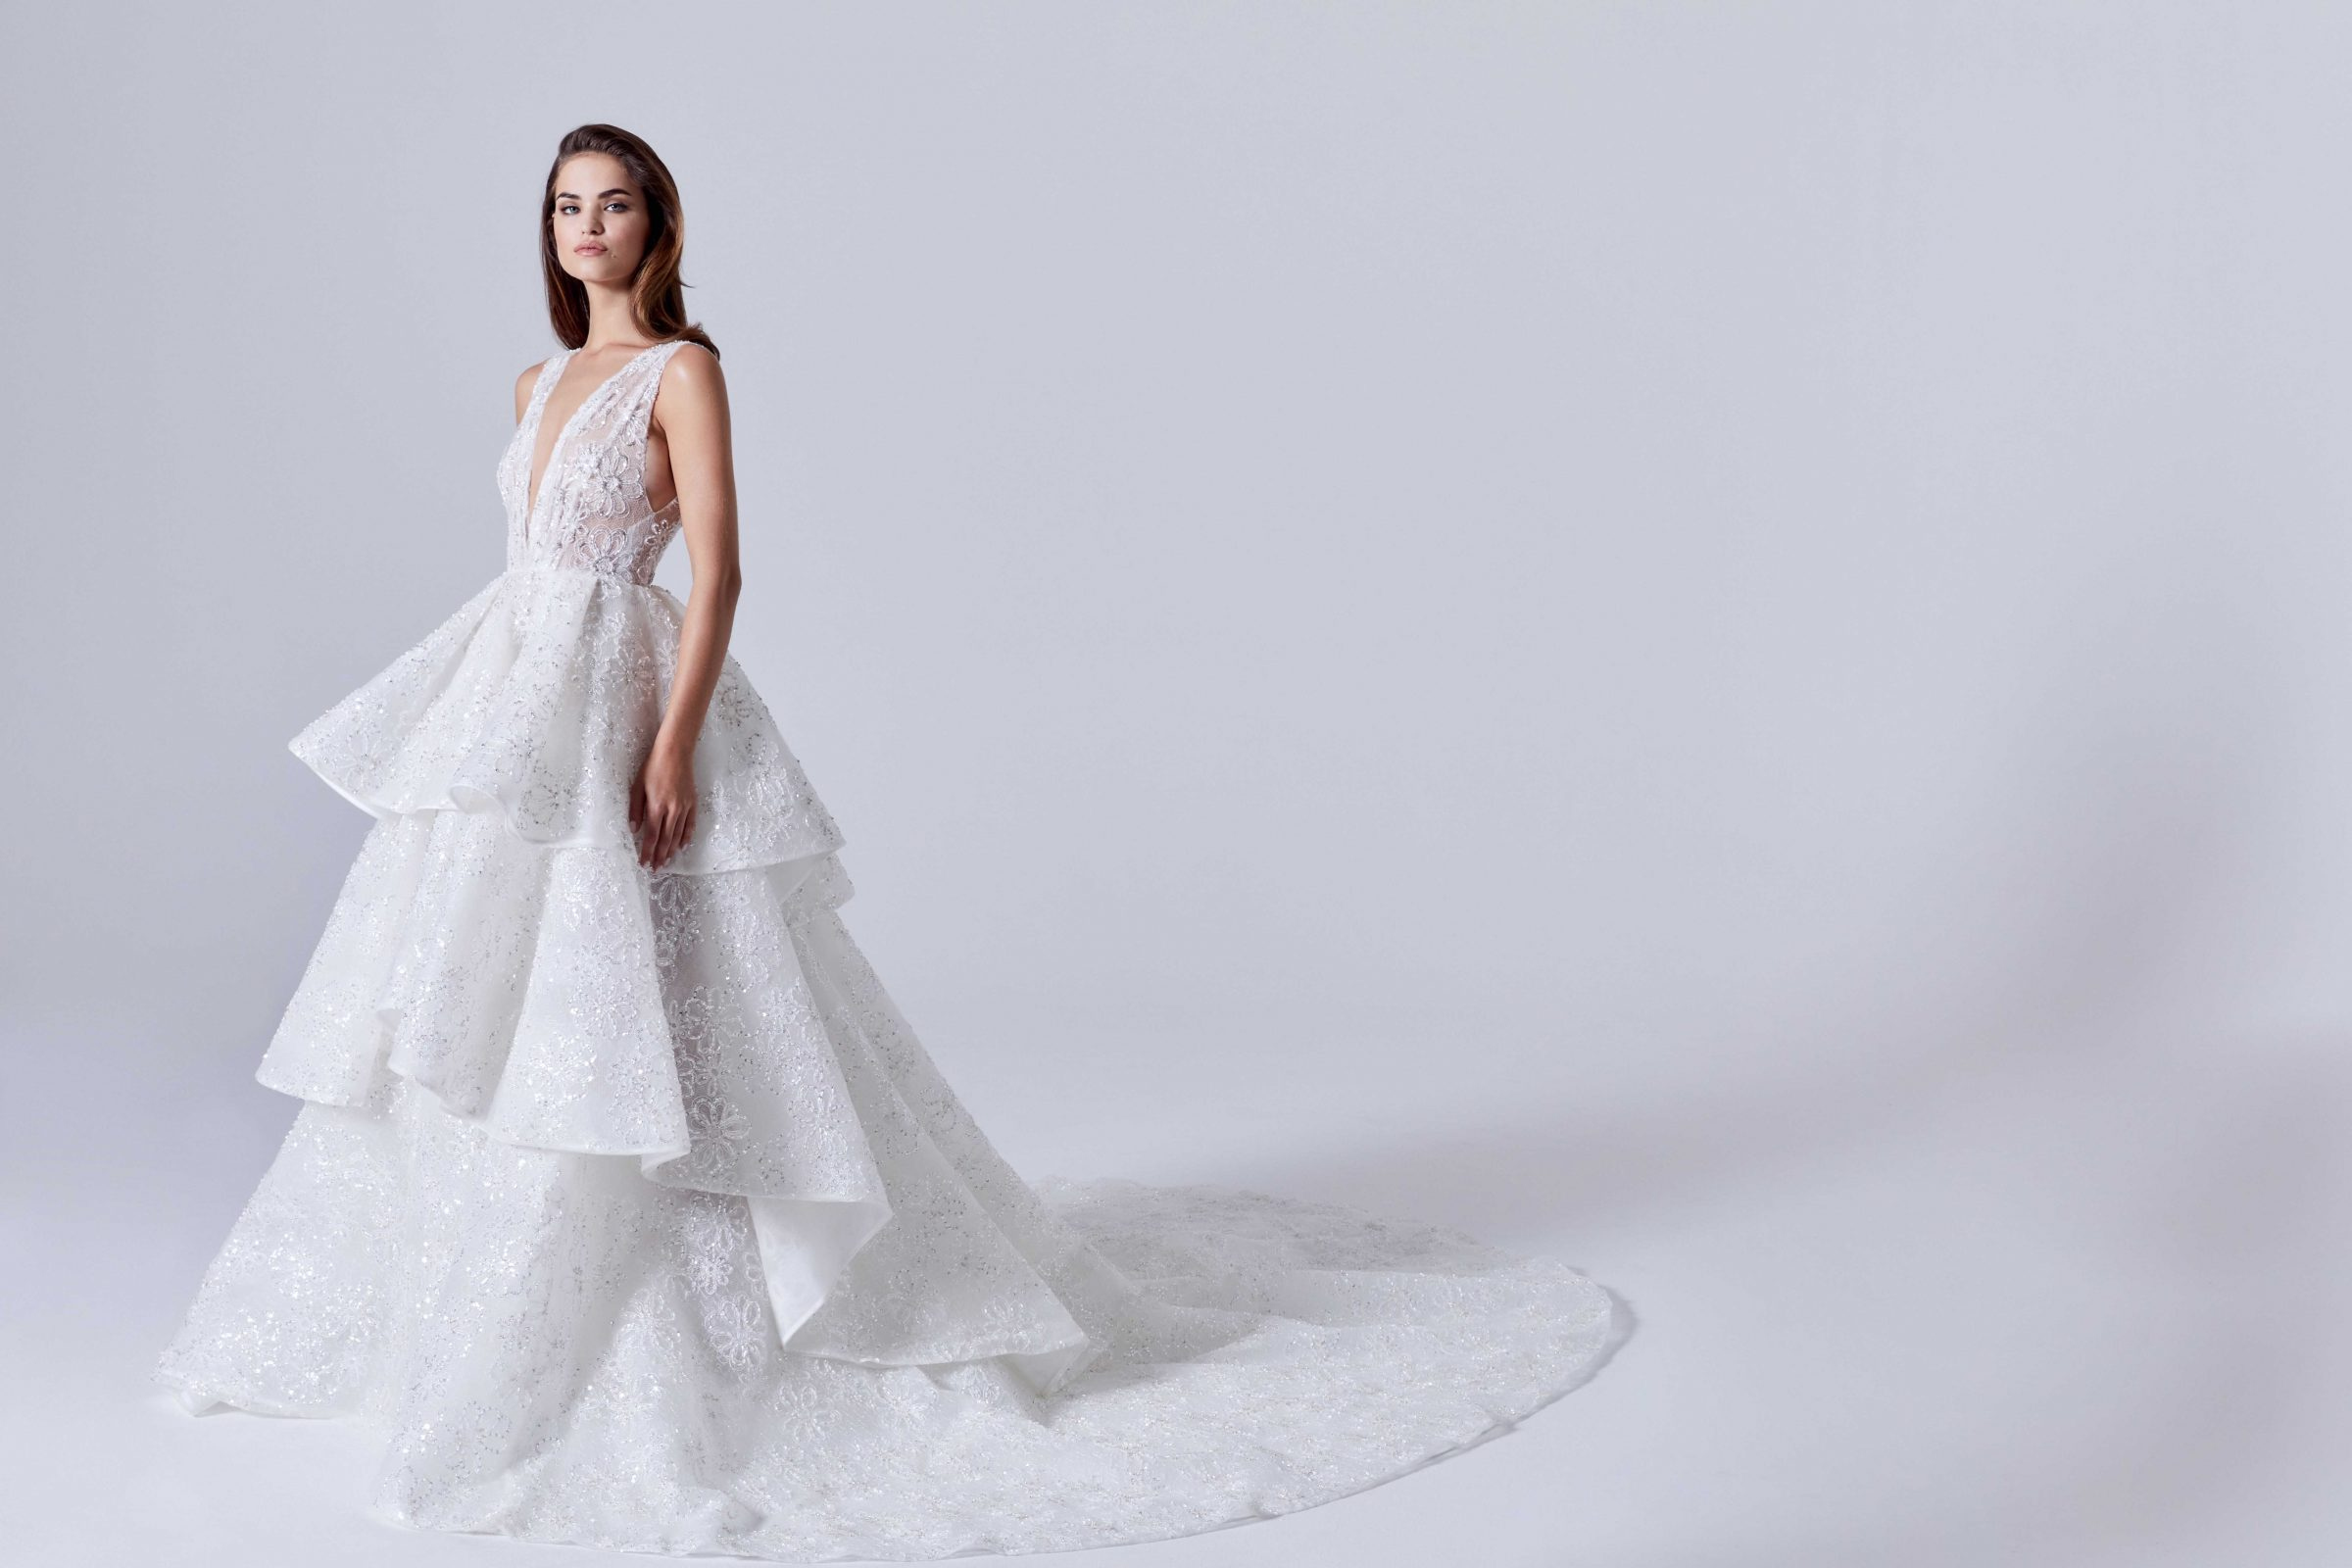 Deep V-neck embellished bridal gown with tiered skirt